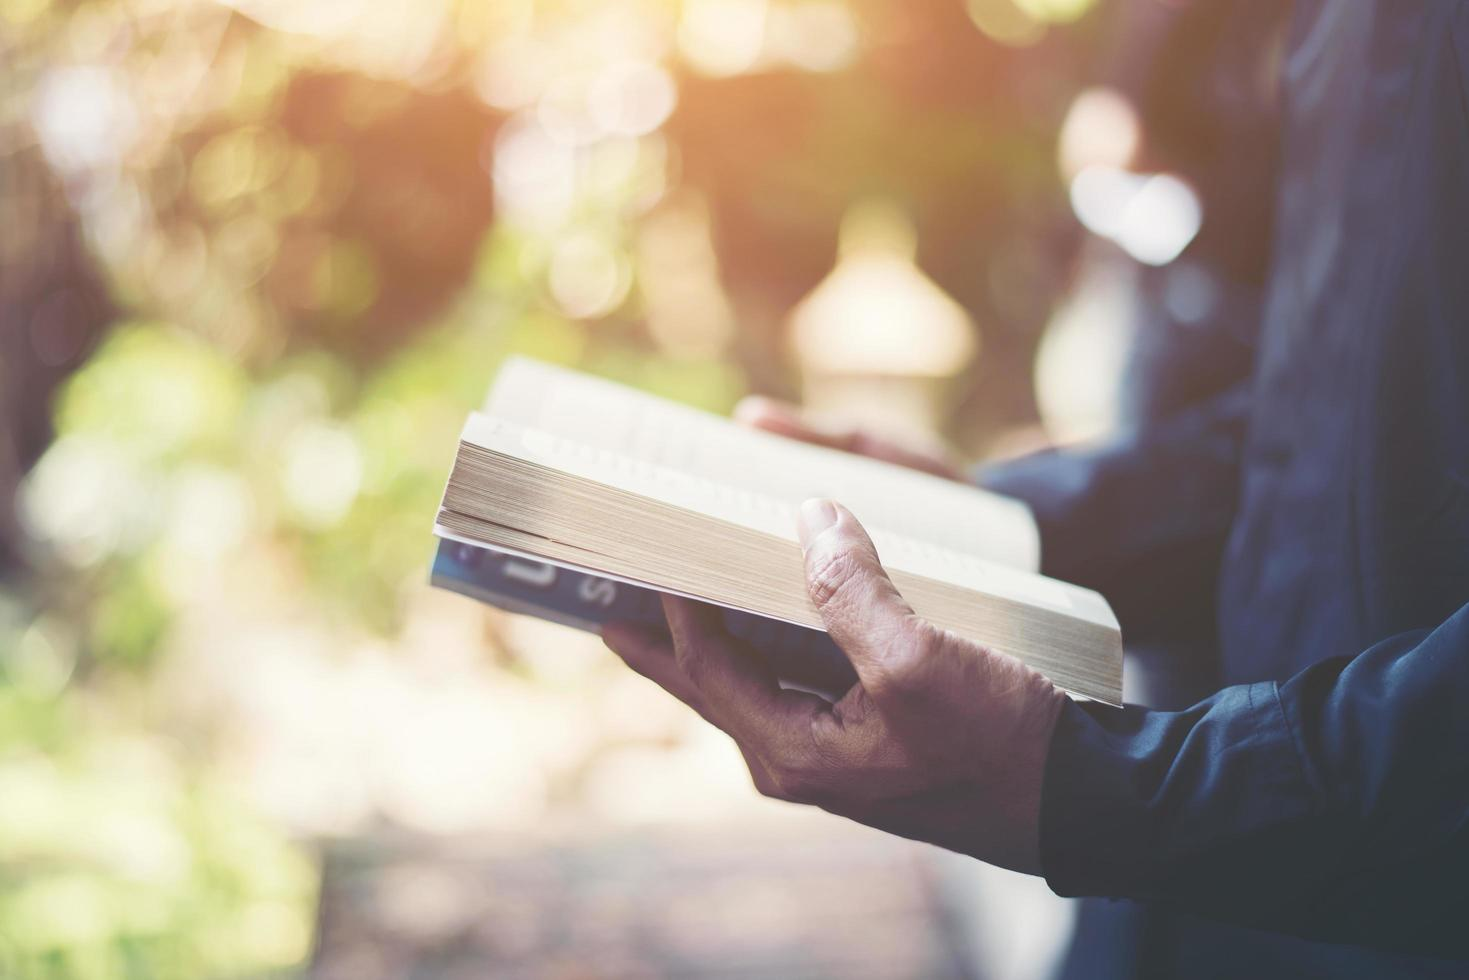 Man reading a book in his hands photo